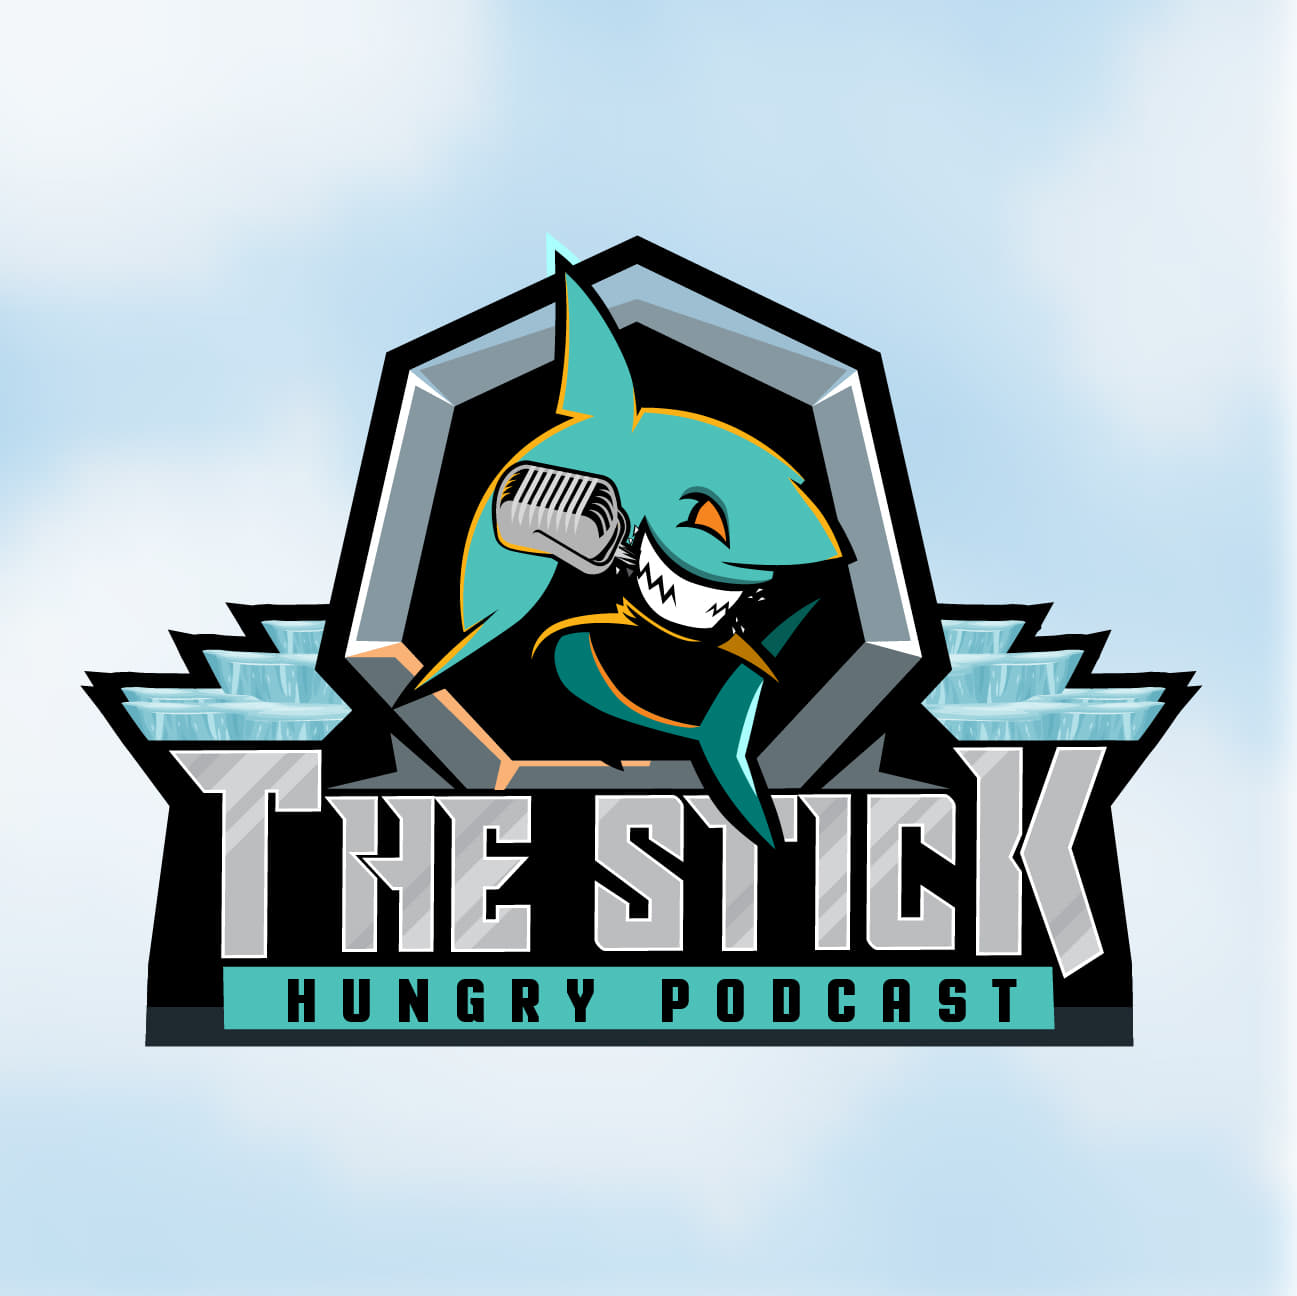 San Jose Sharks - Stick Hungry Podcast - EP60 - S1 FT: Solomon Strader, Nick Flohr, Bayou Benders